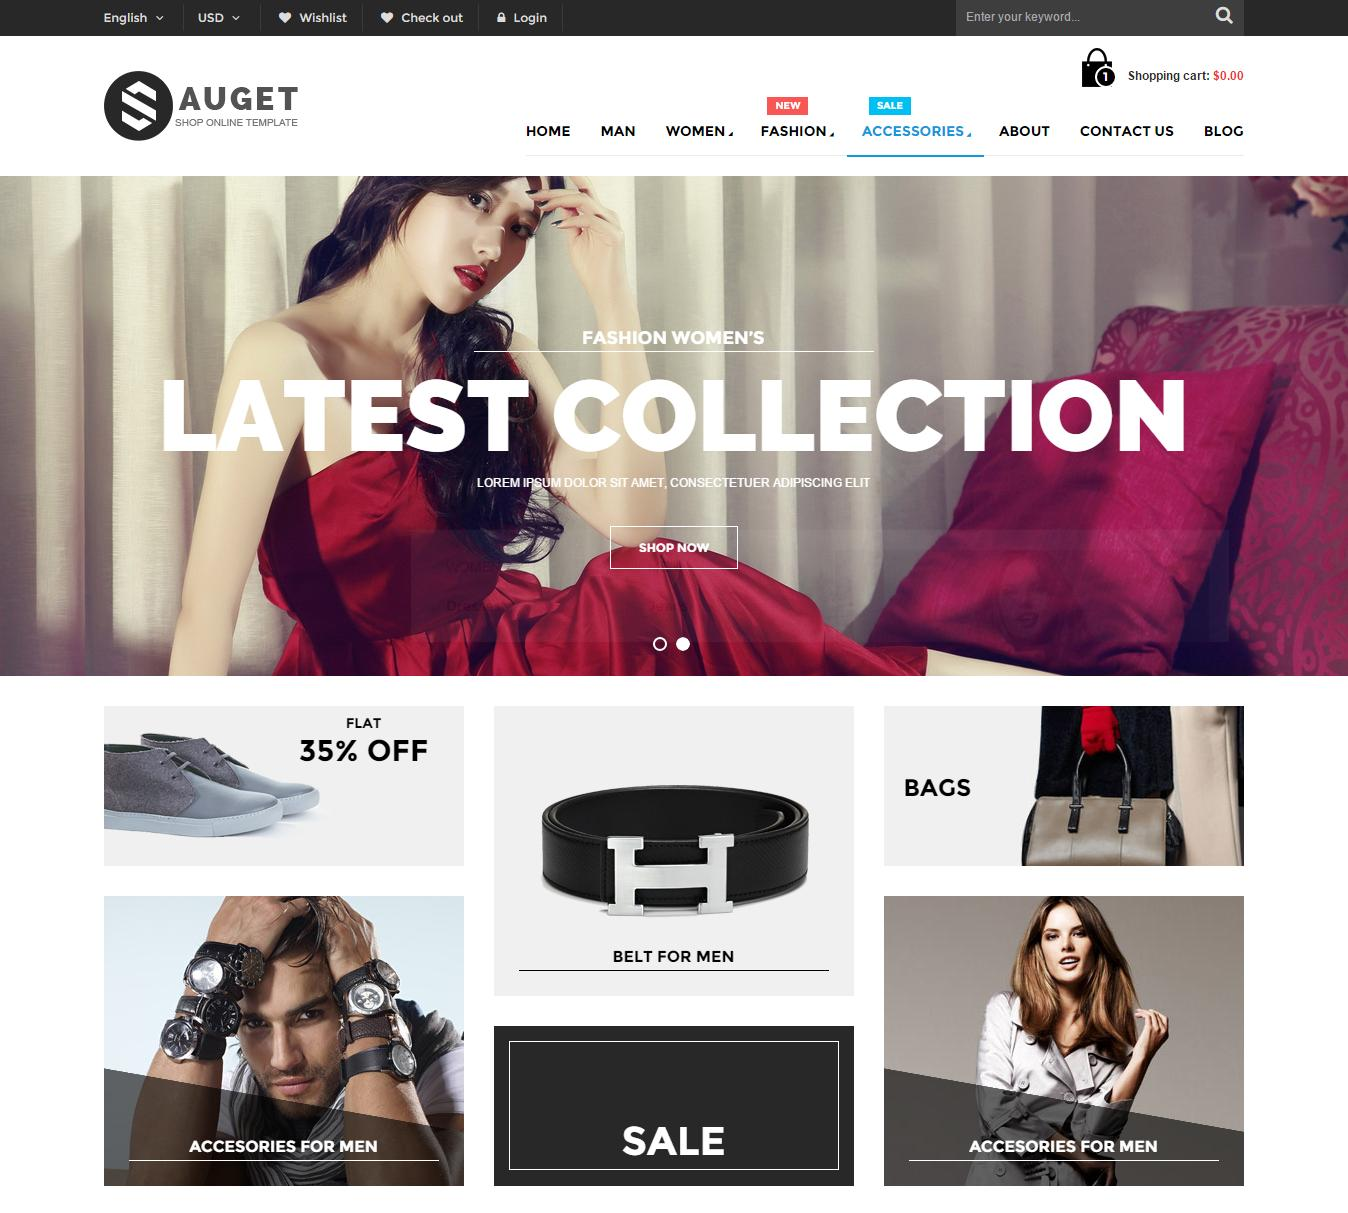 PSD to HTML for Themeforest Submission by AslamHasib - 80773